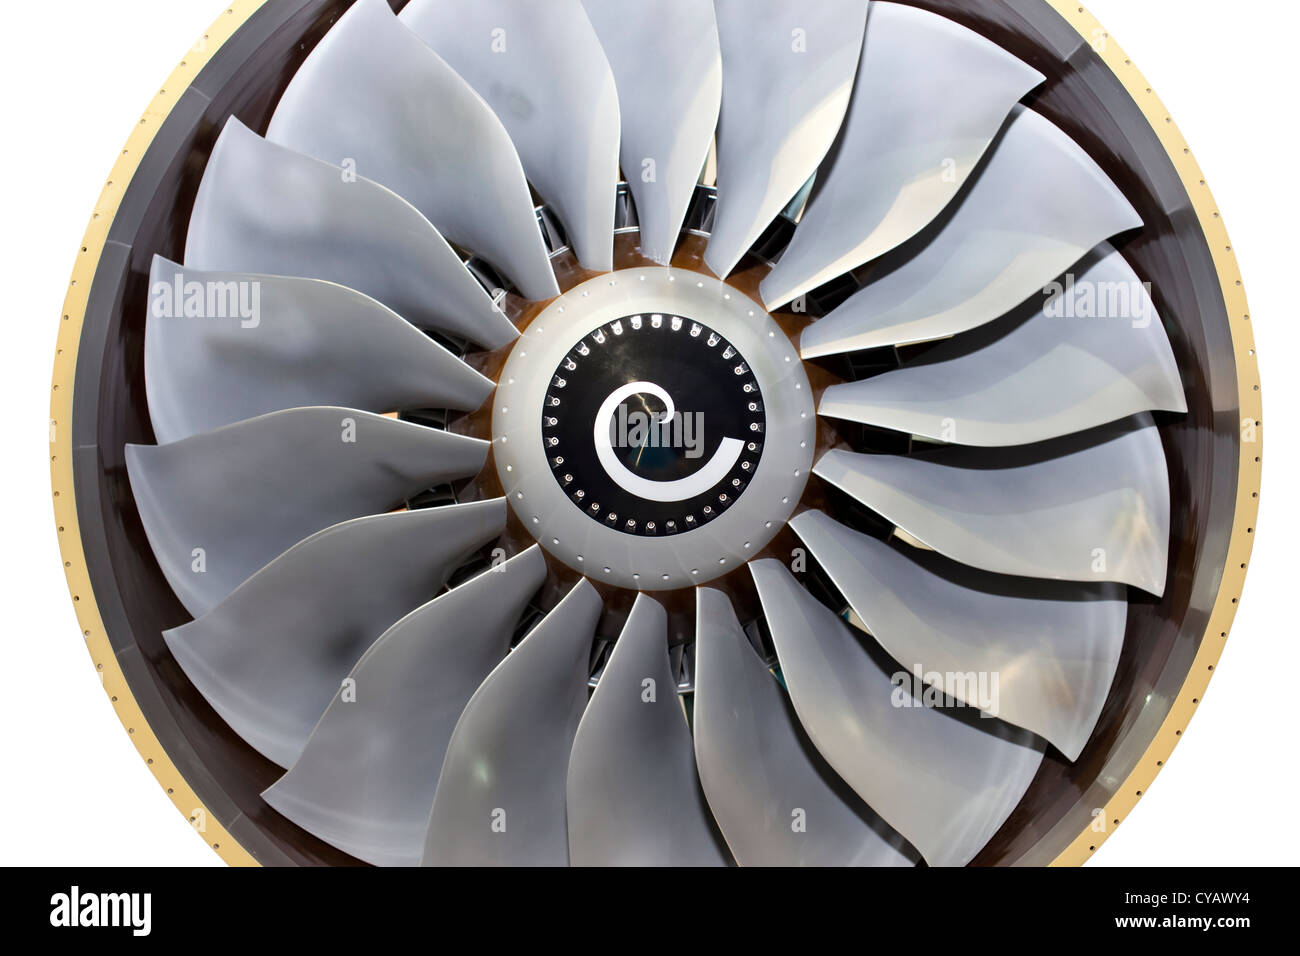 Close-up of a turbofan jet engine of a airplane - Stock Image